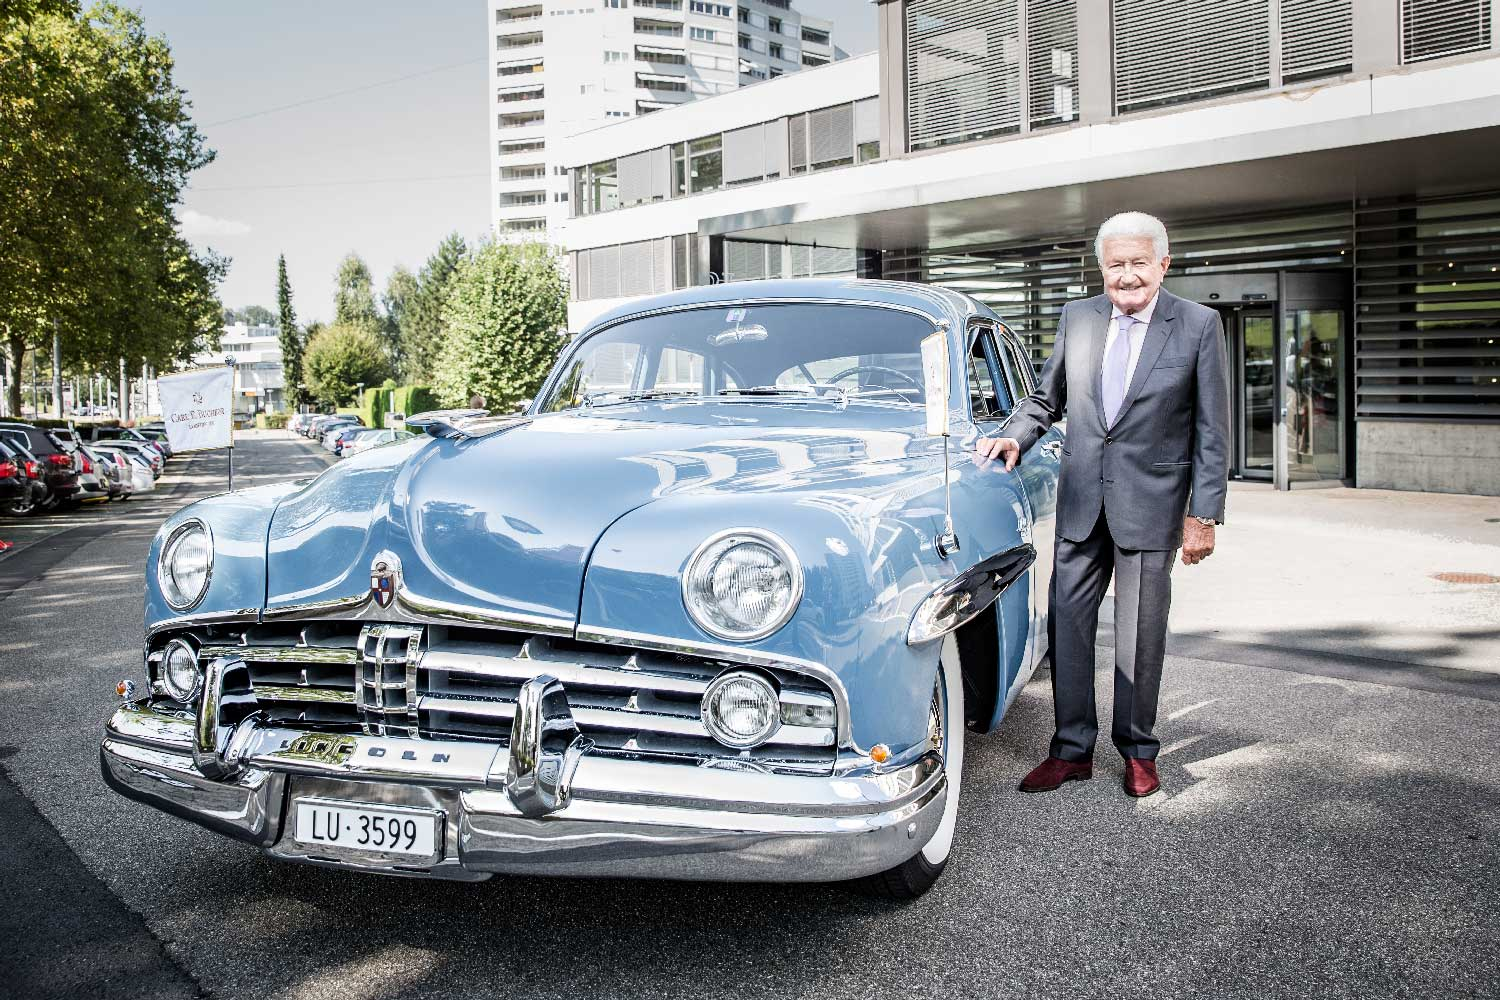 Jörg G. Bucherer, the Chairman of the Bucherer Group, tracked down the family's original blue Lincoln Cosmopolitan Town Car and submitted it for full restoration to bring it back to its original glory.